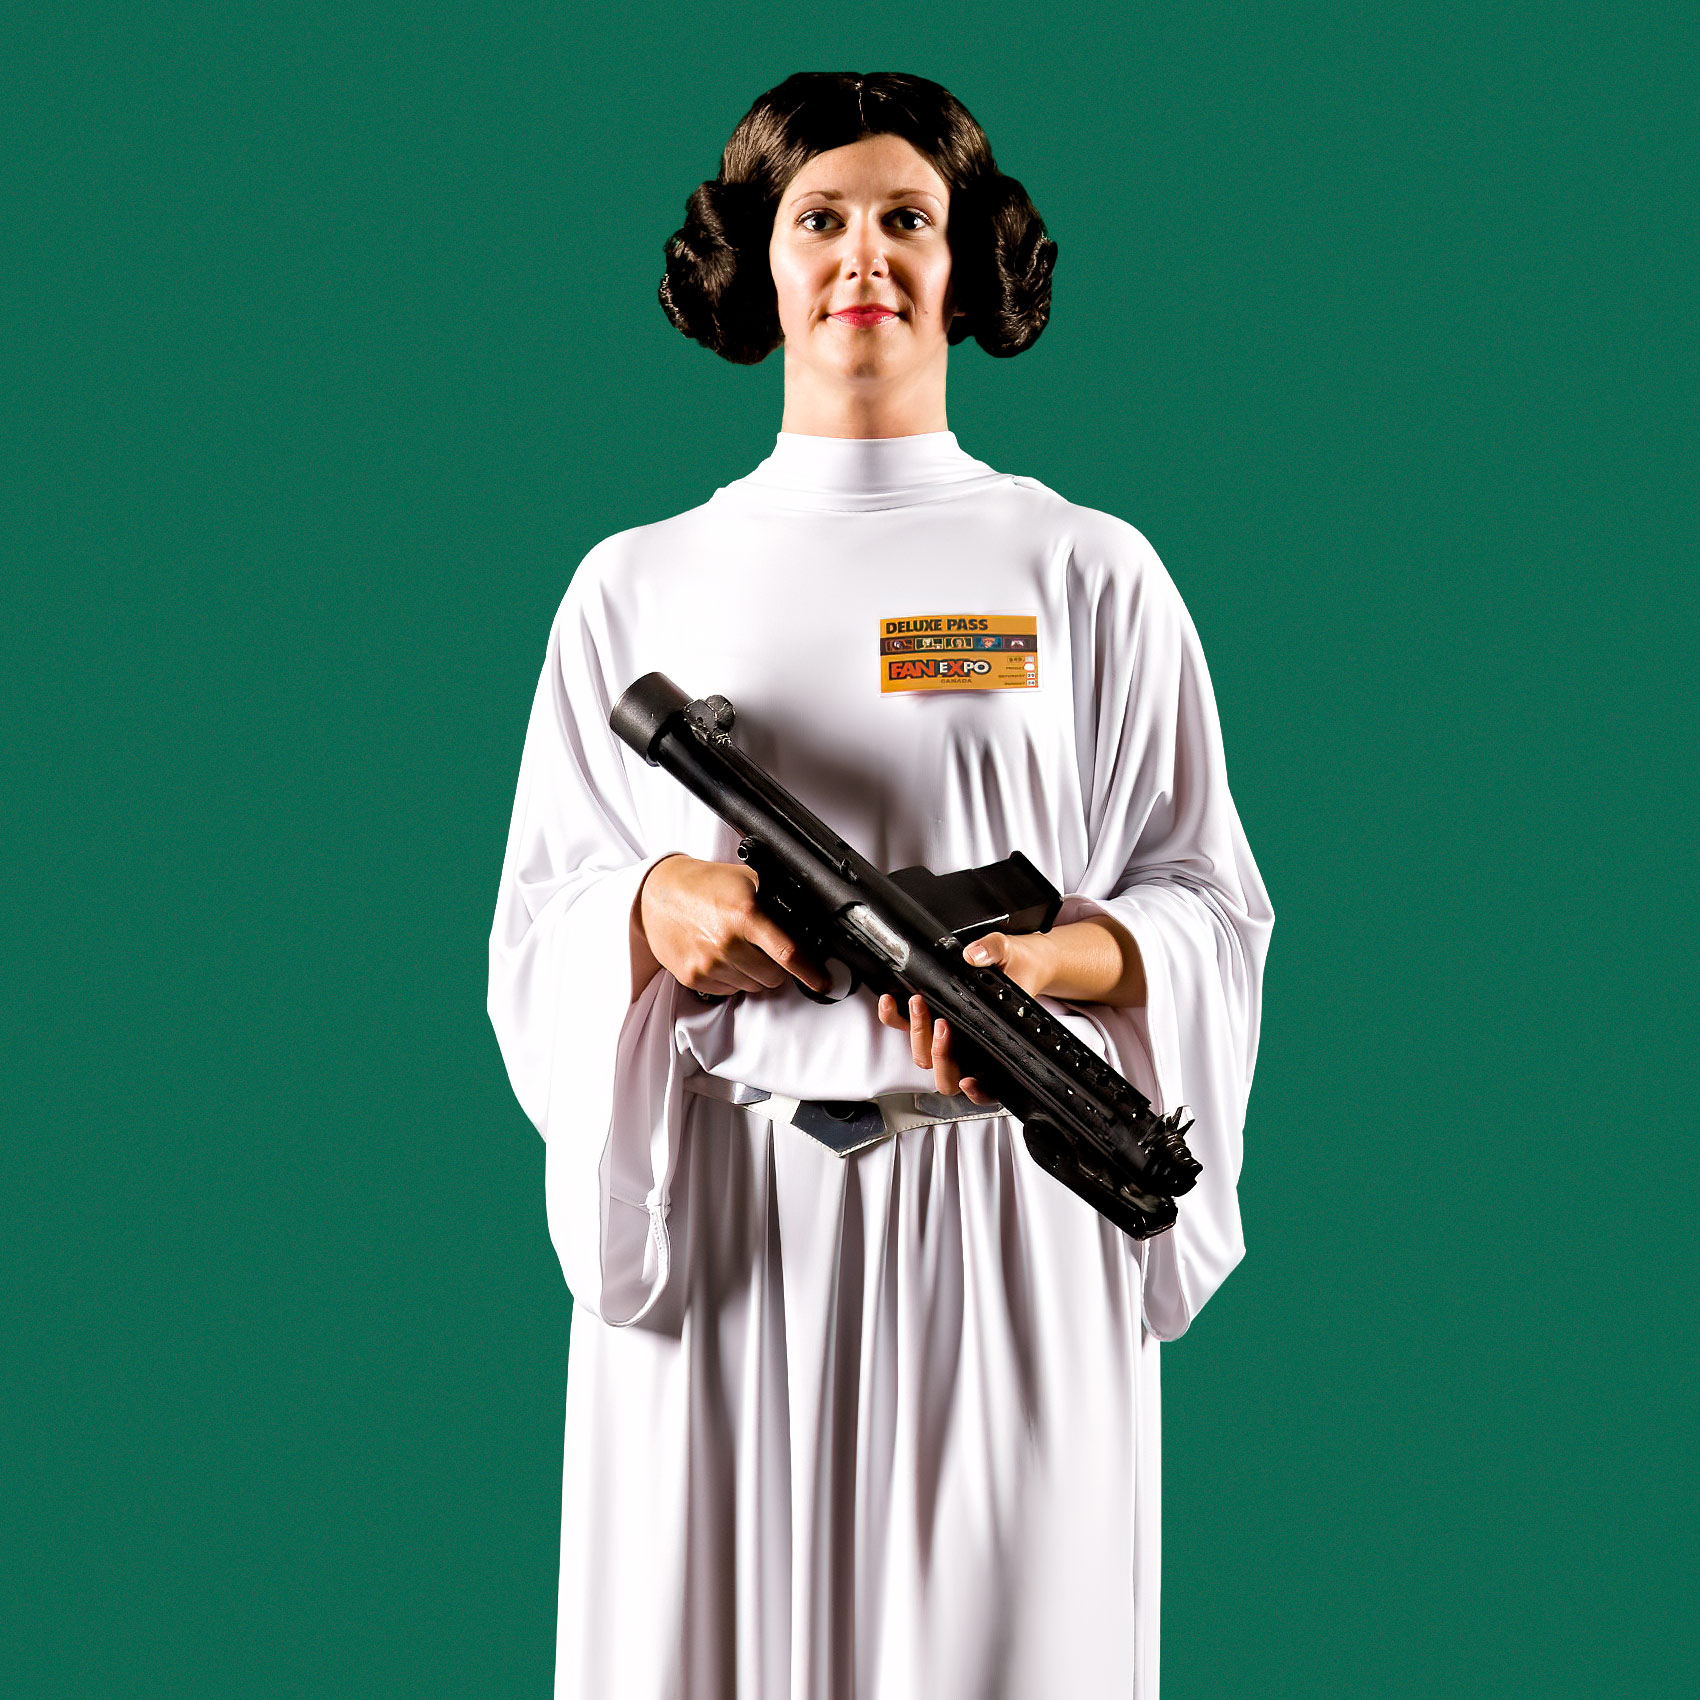 a-woman-dressed-as-princess-leia-poses-for-a-photo-at-toronto-fan-expo